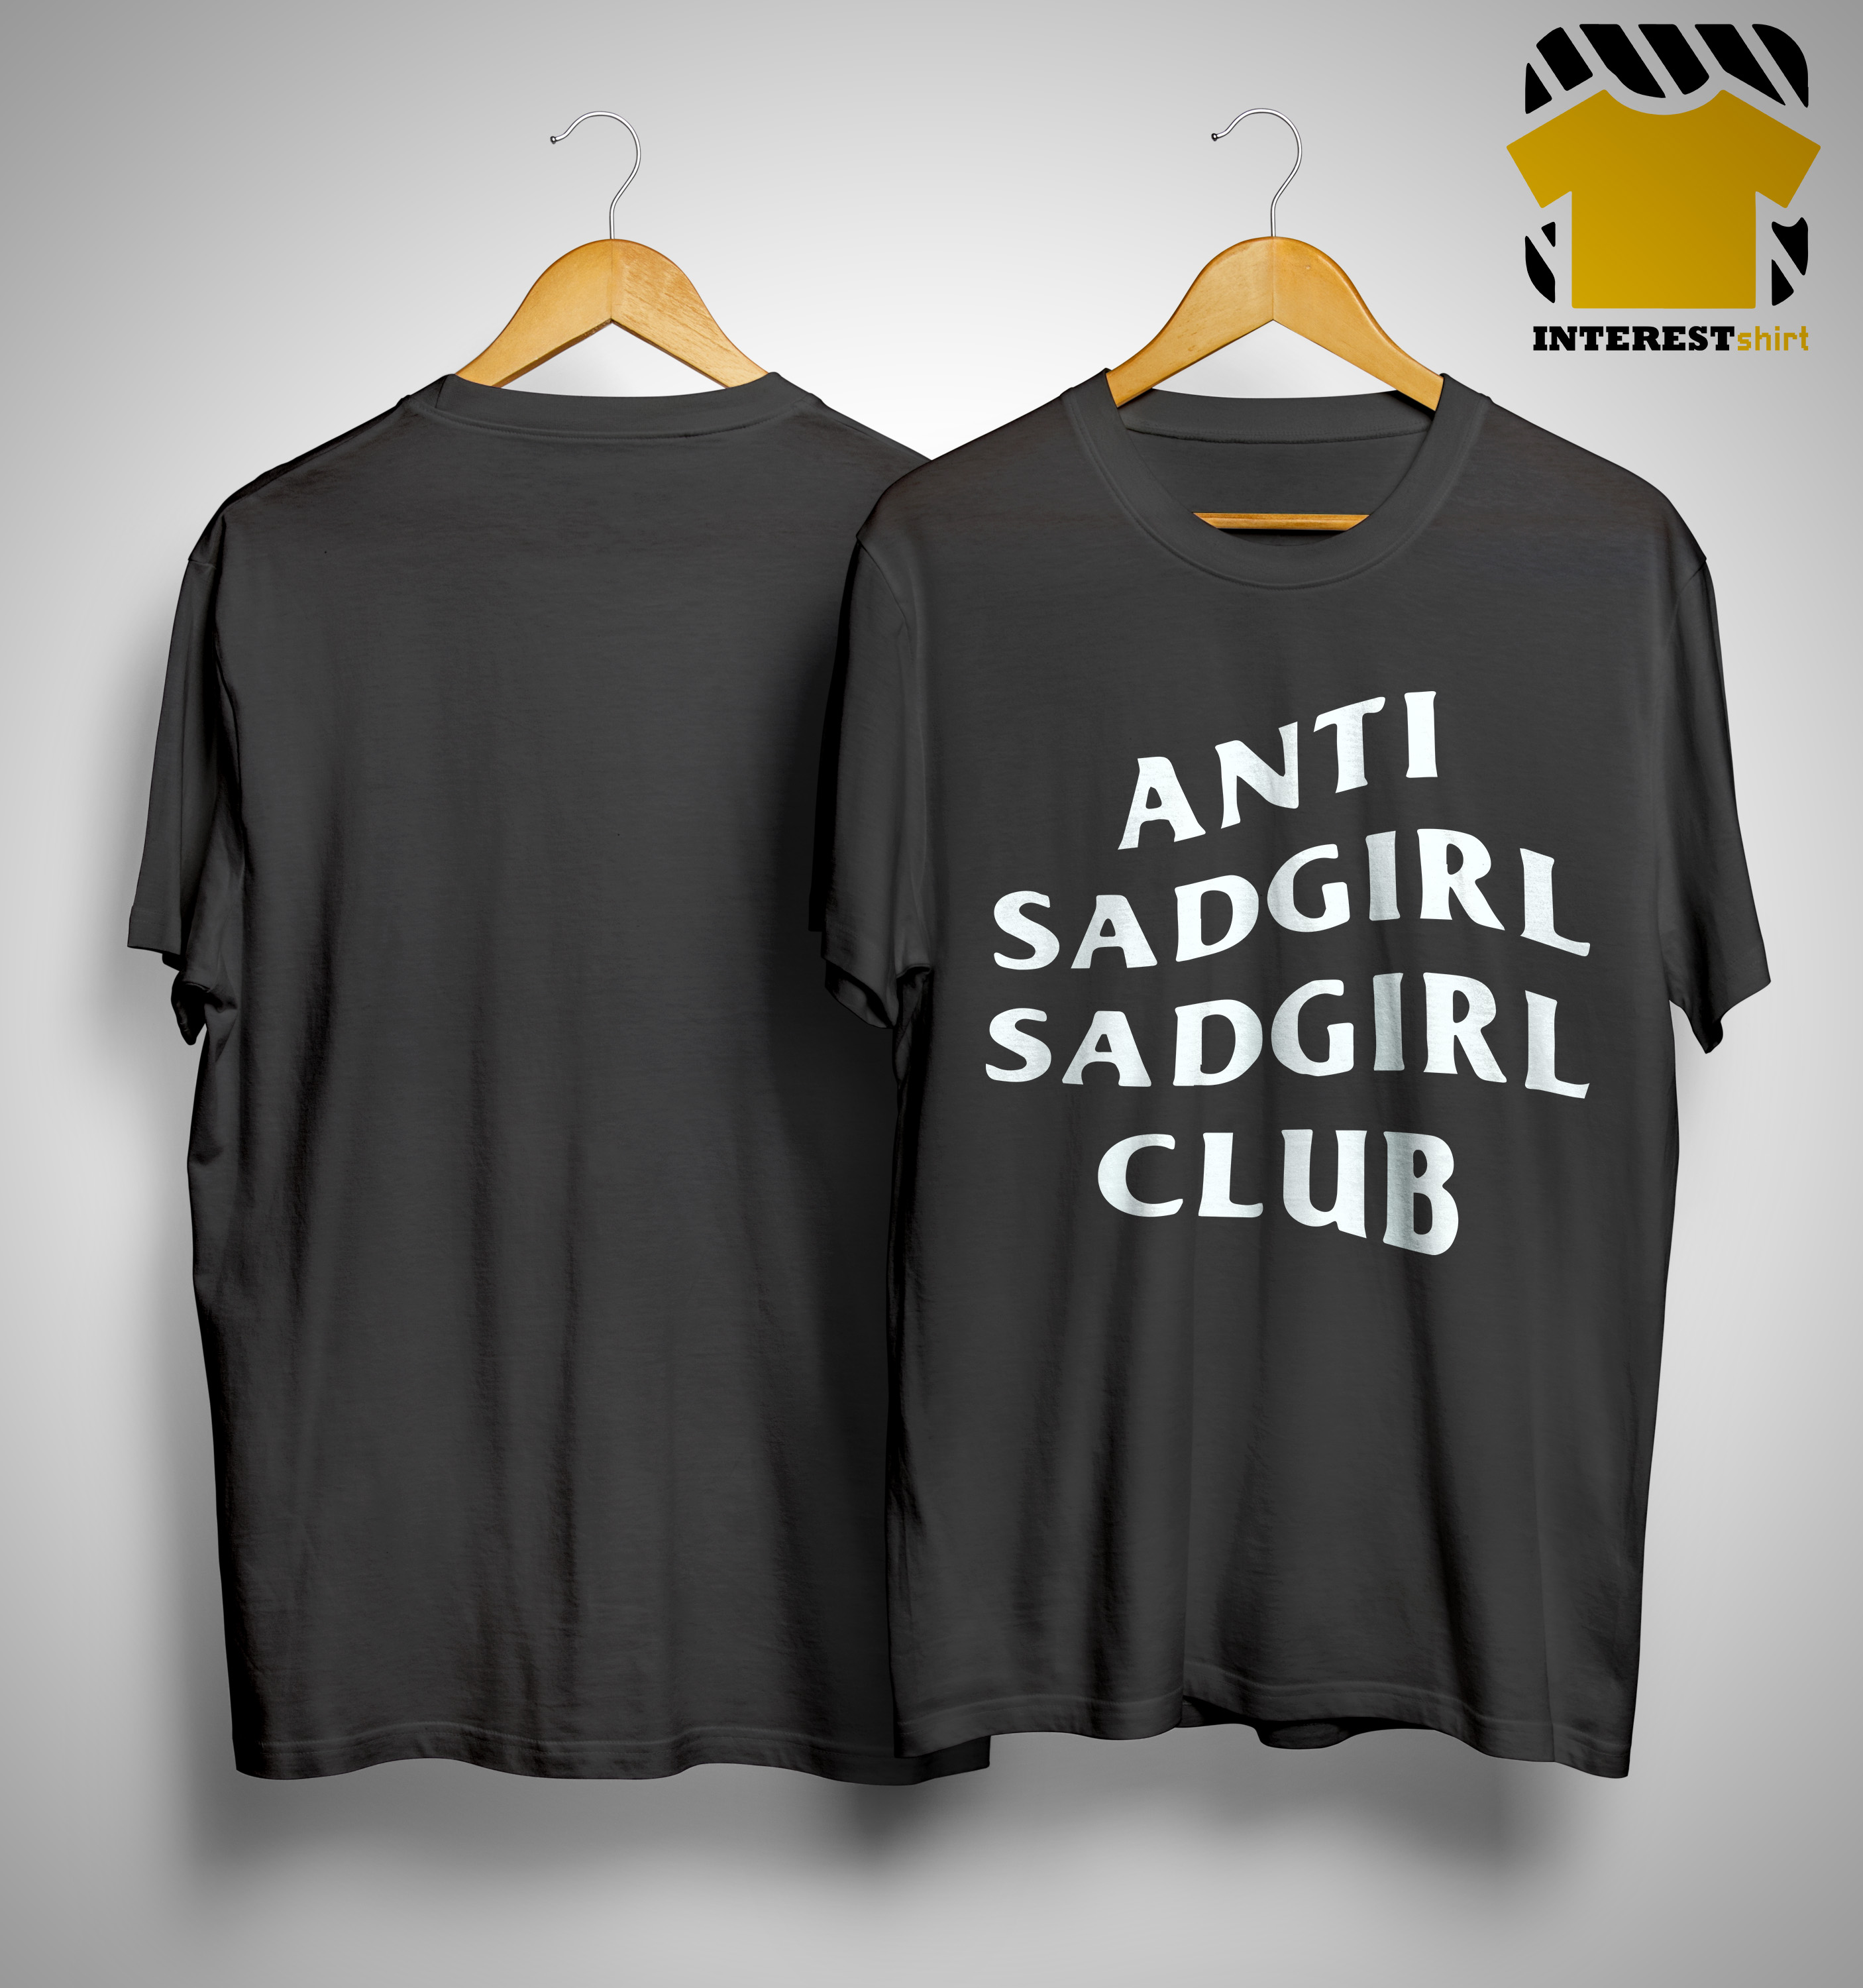 Said The Sky Anti Sadgirl Sadgirl Club Shirt.